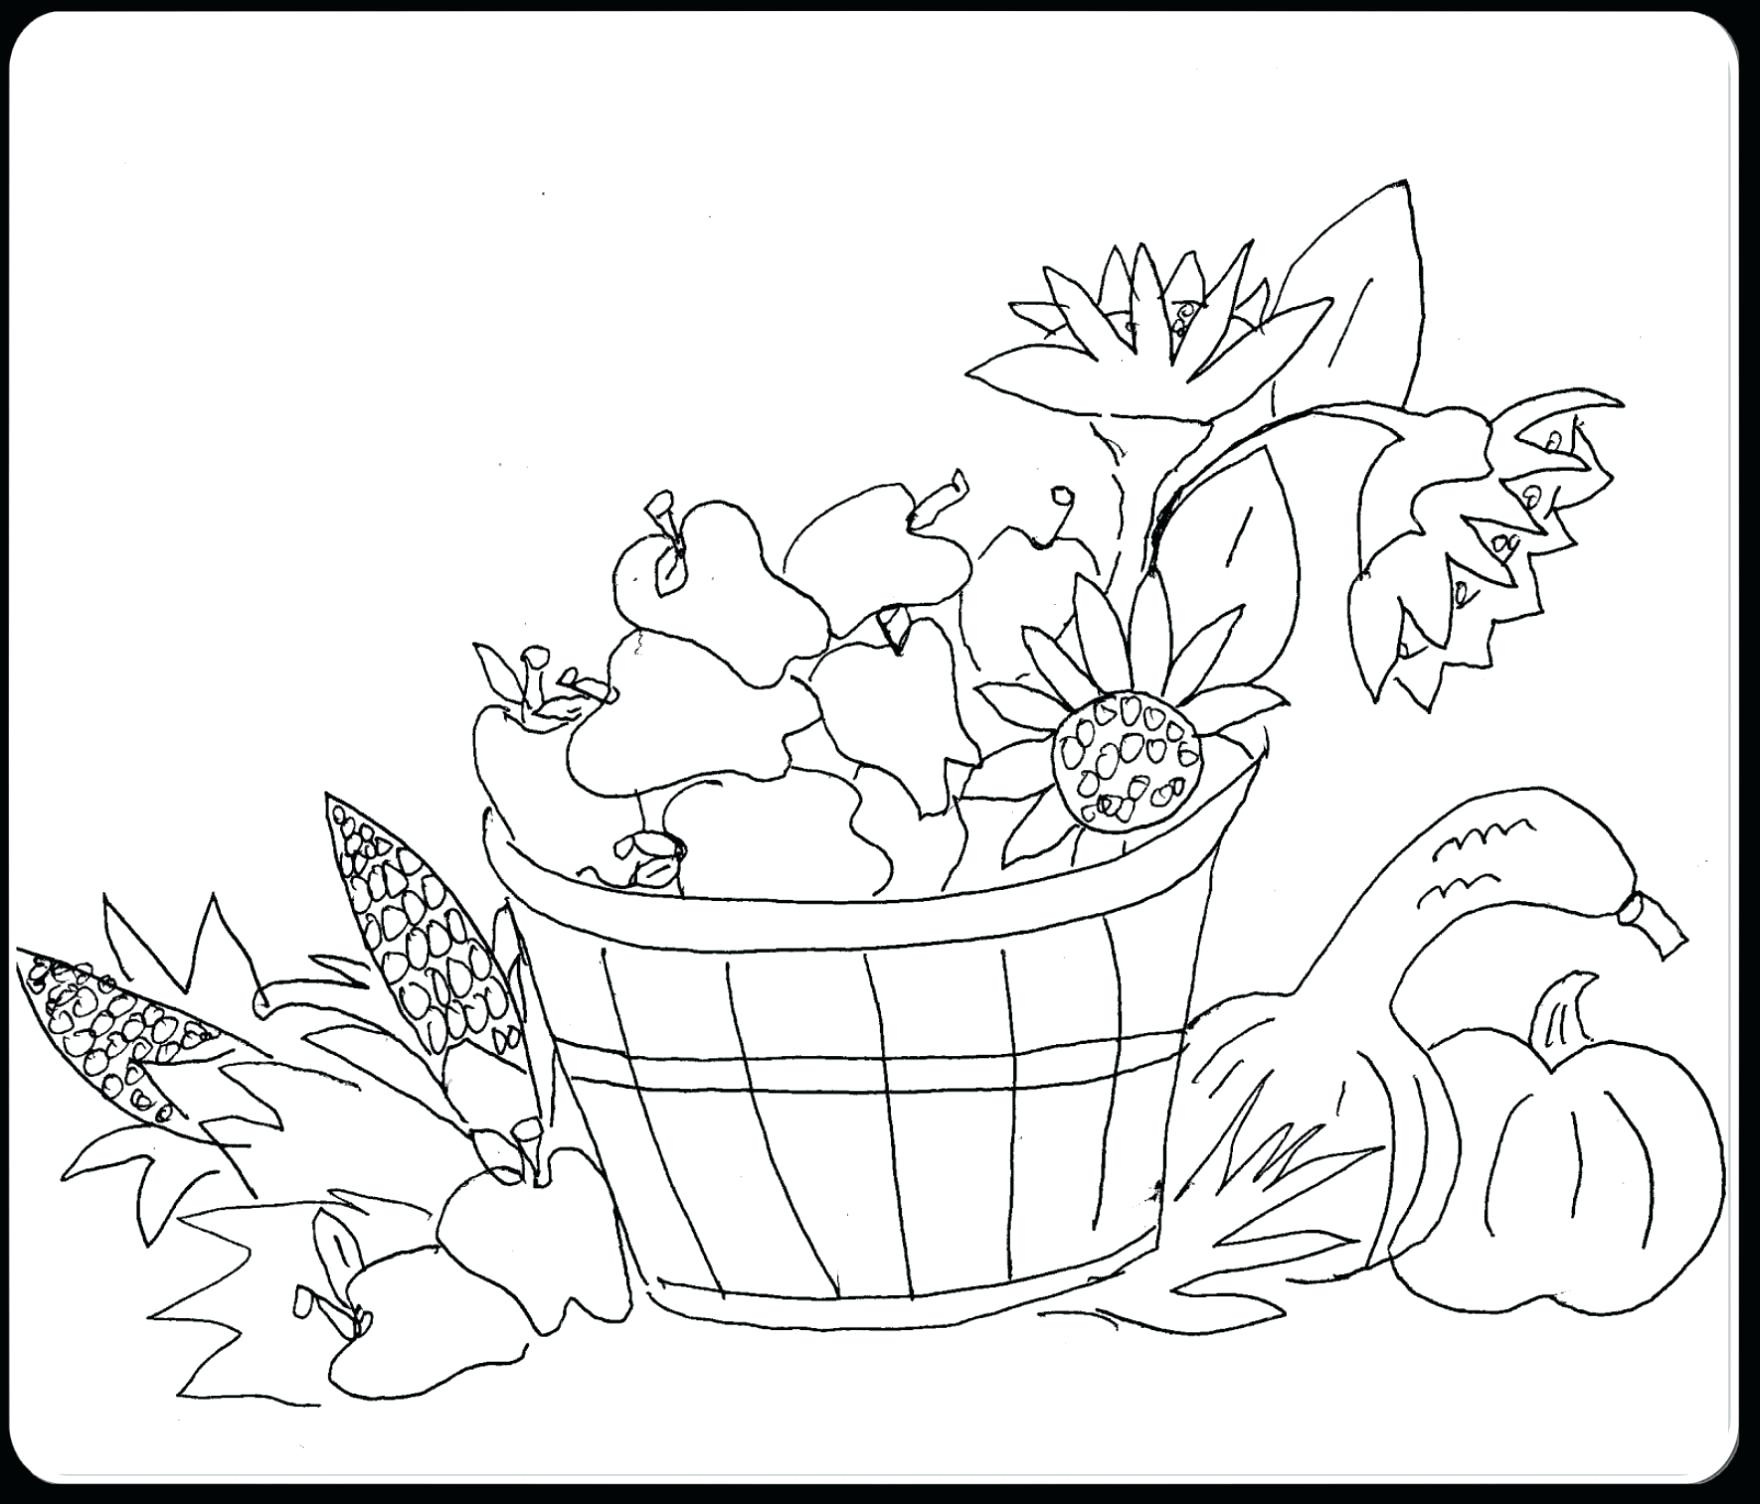 Fall festival clipart free download best fall festival for Fall festival coloring pages